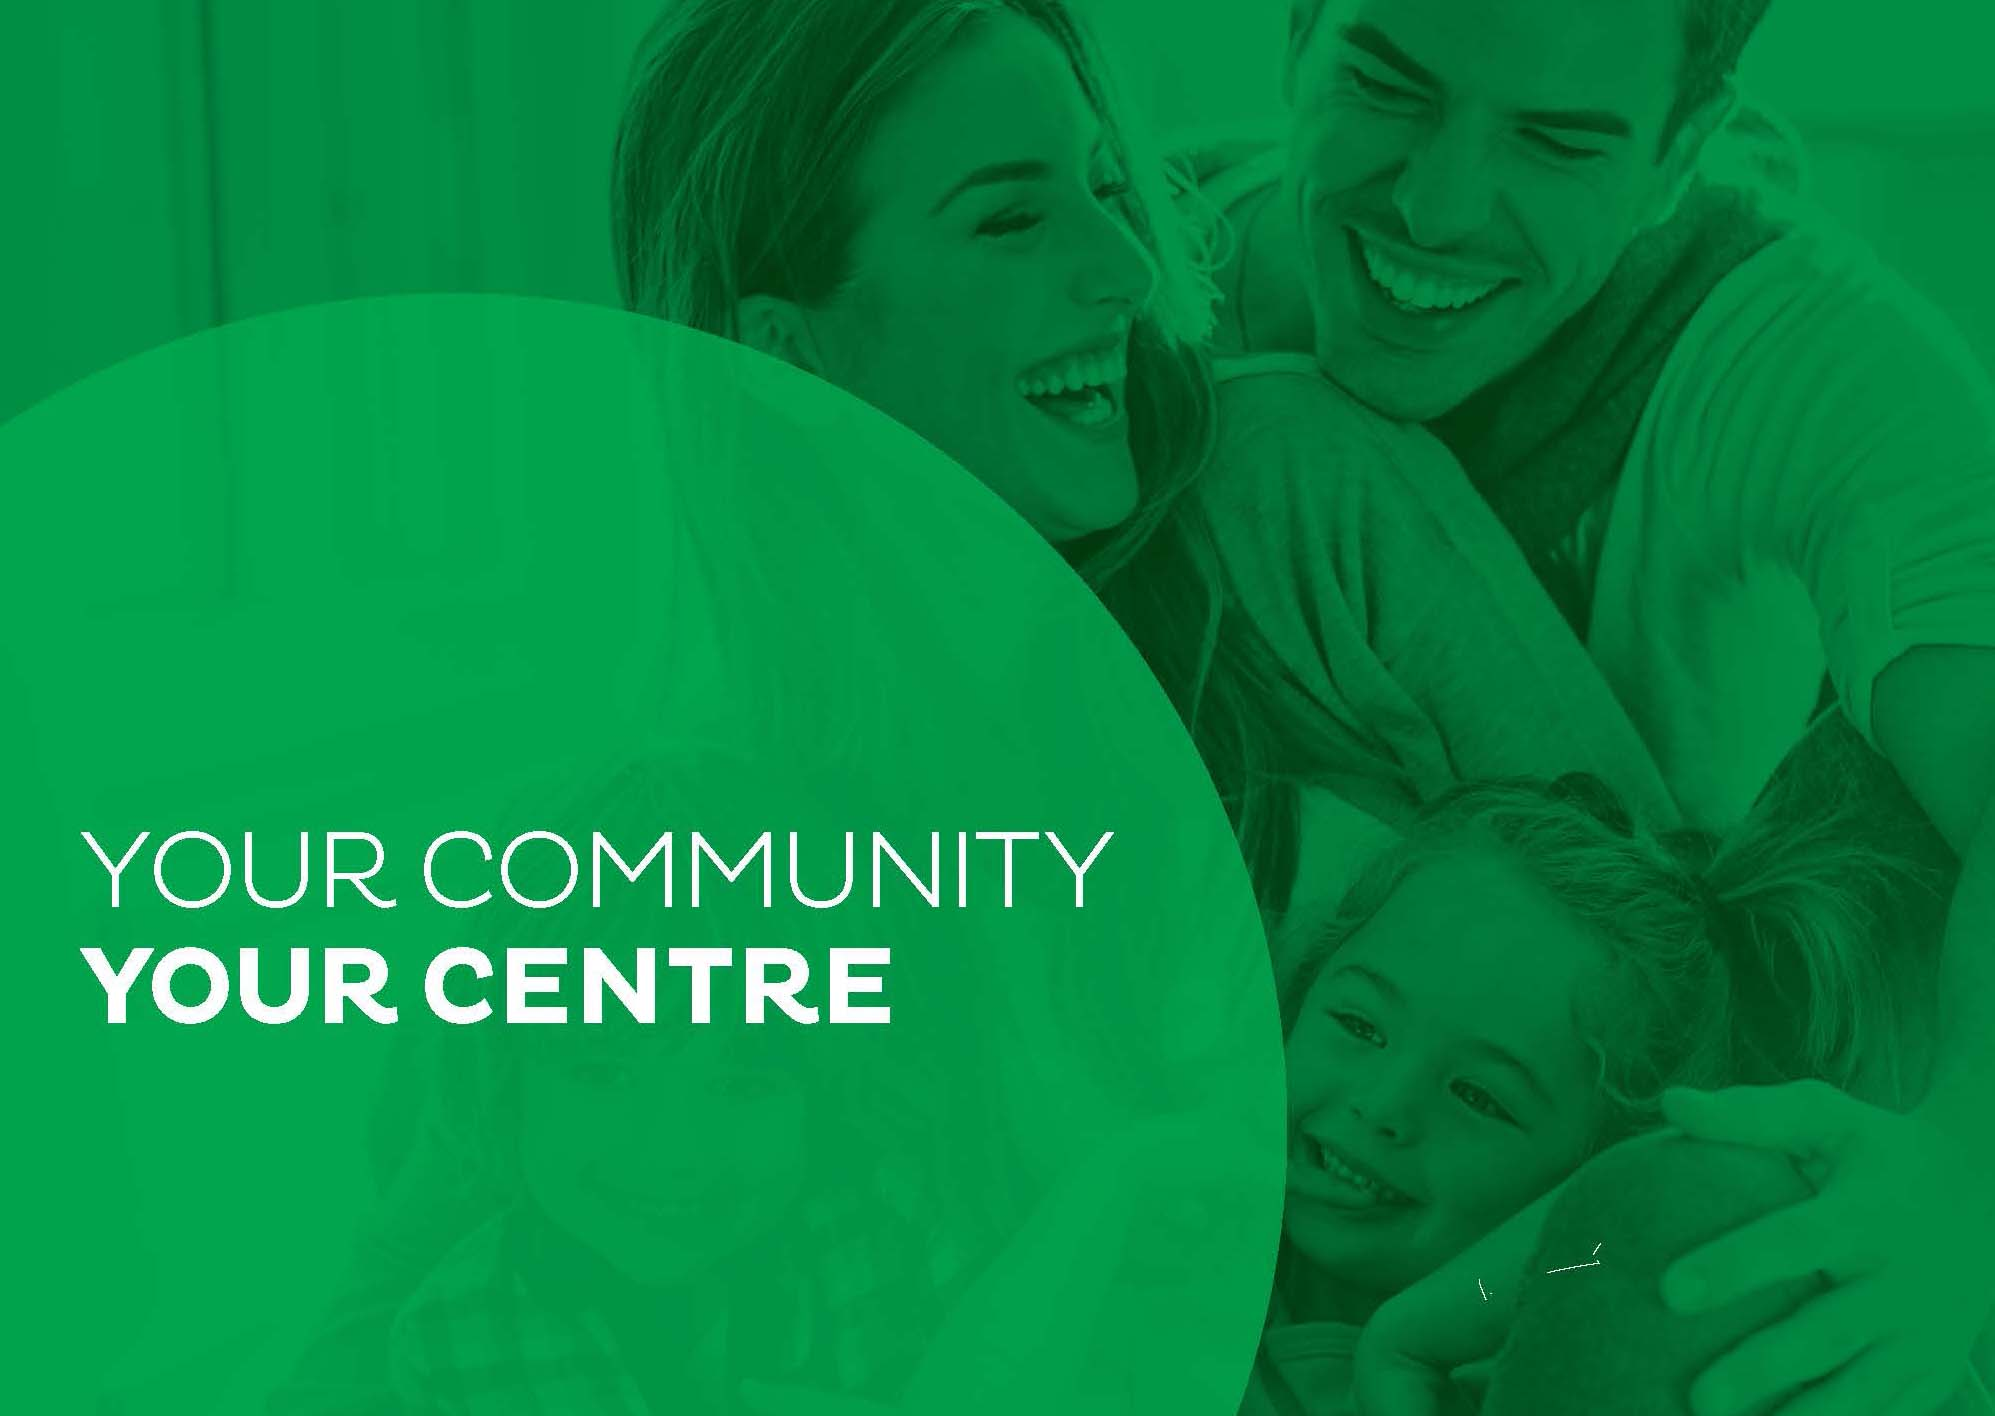 Your Community, Your Centre